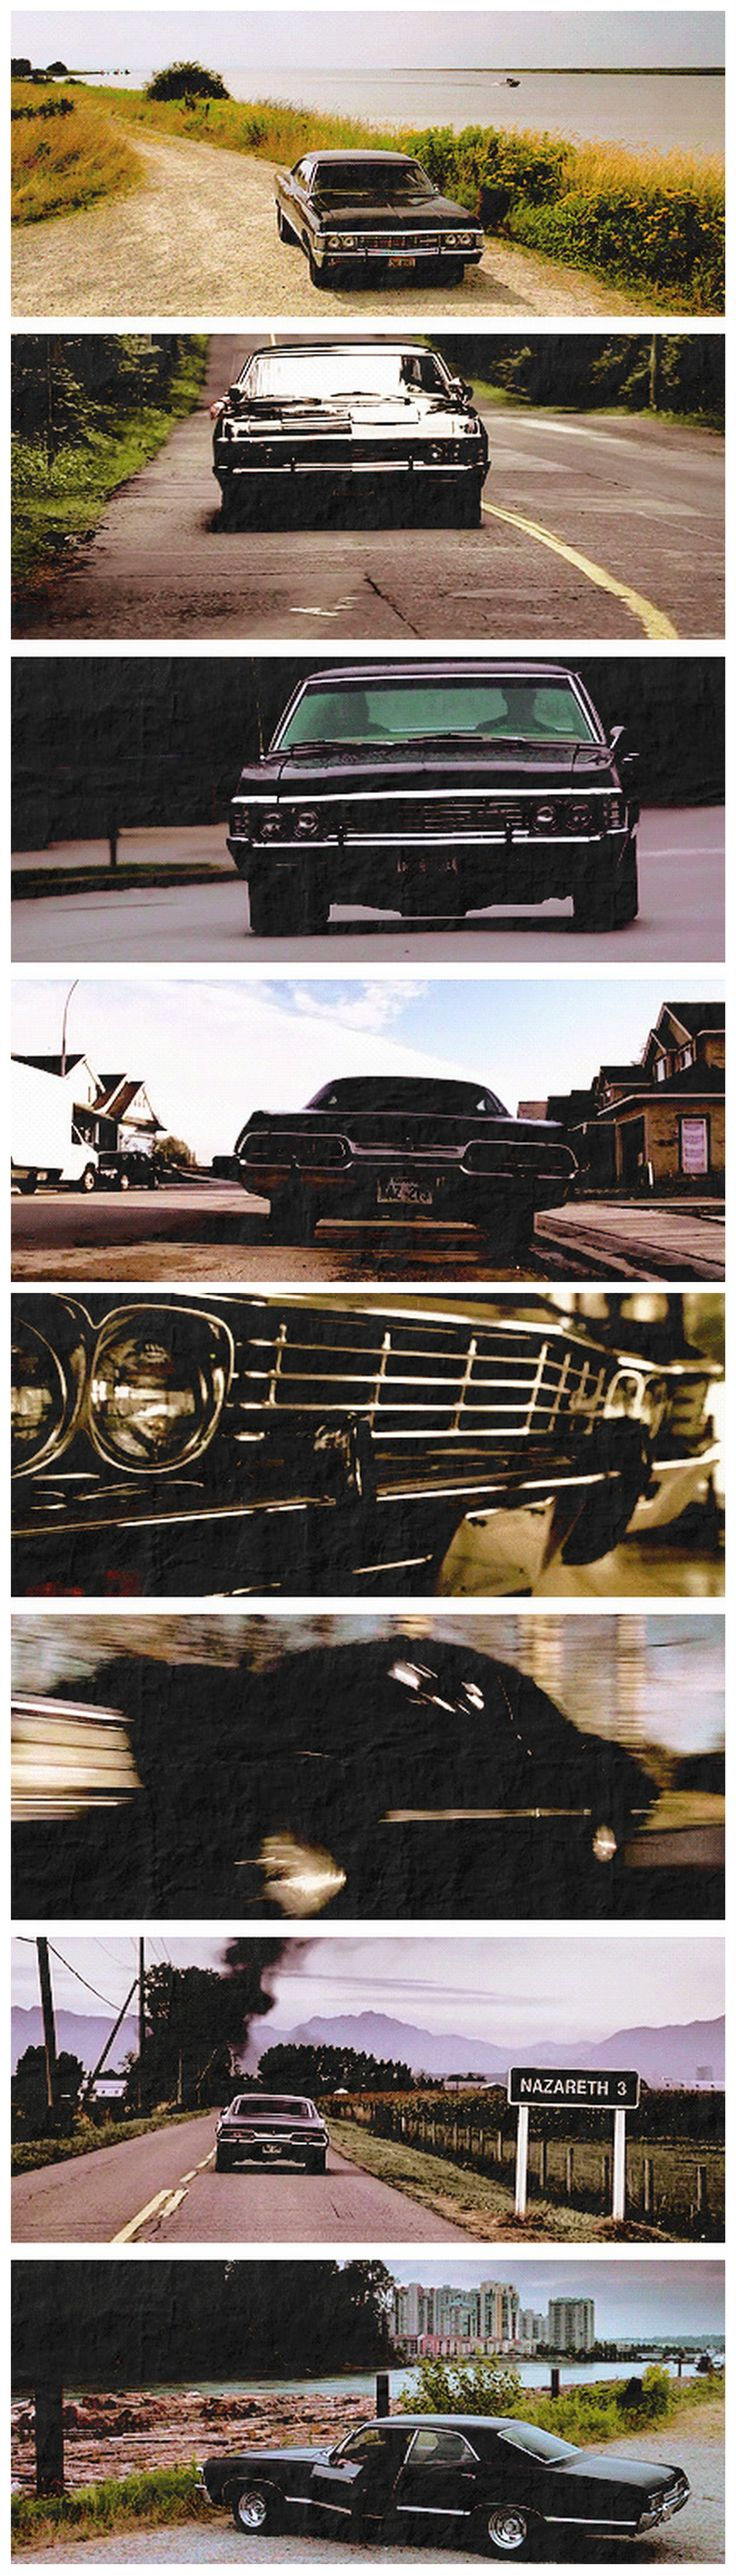 Dean's Baby. 67 Chevy Impala. Supernatural. It's gorgeous, I love it so much.